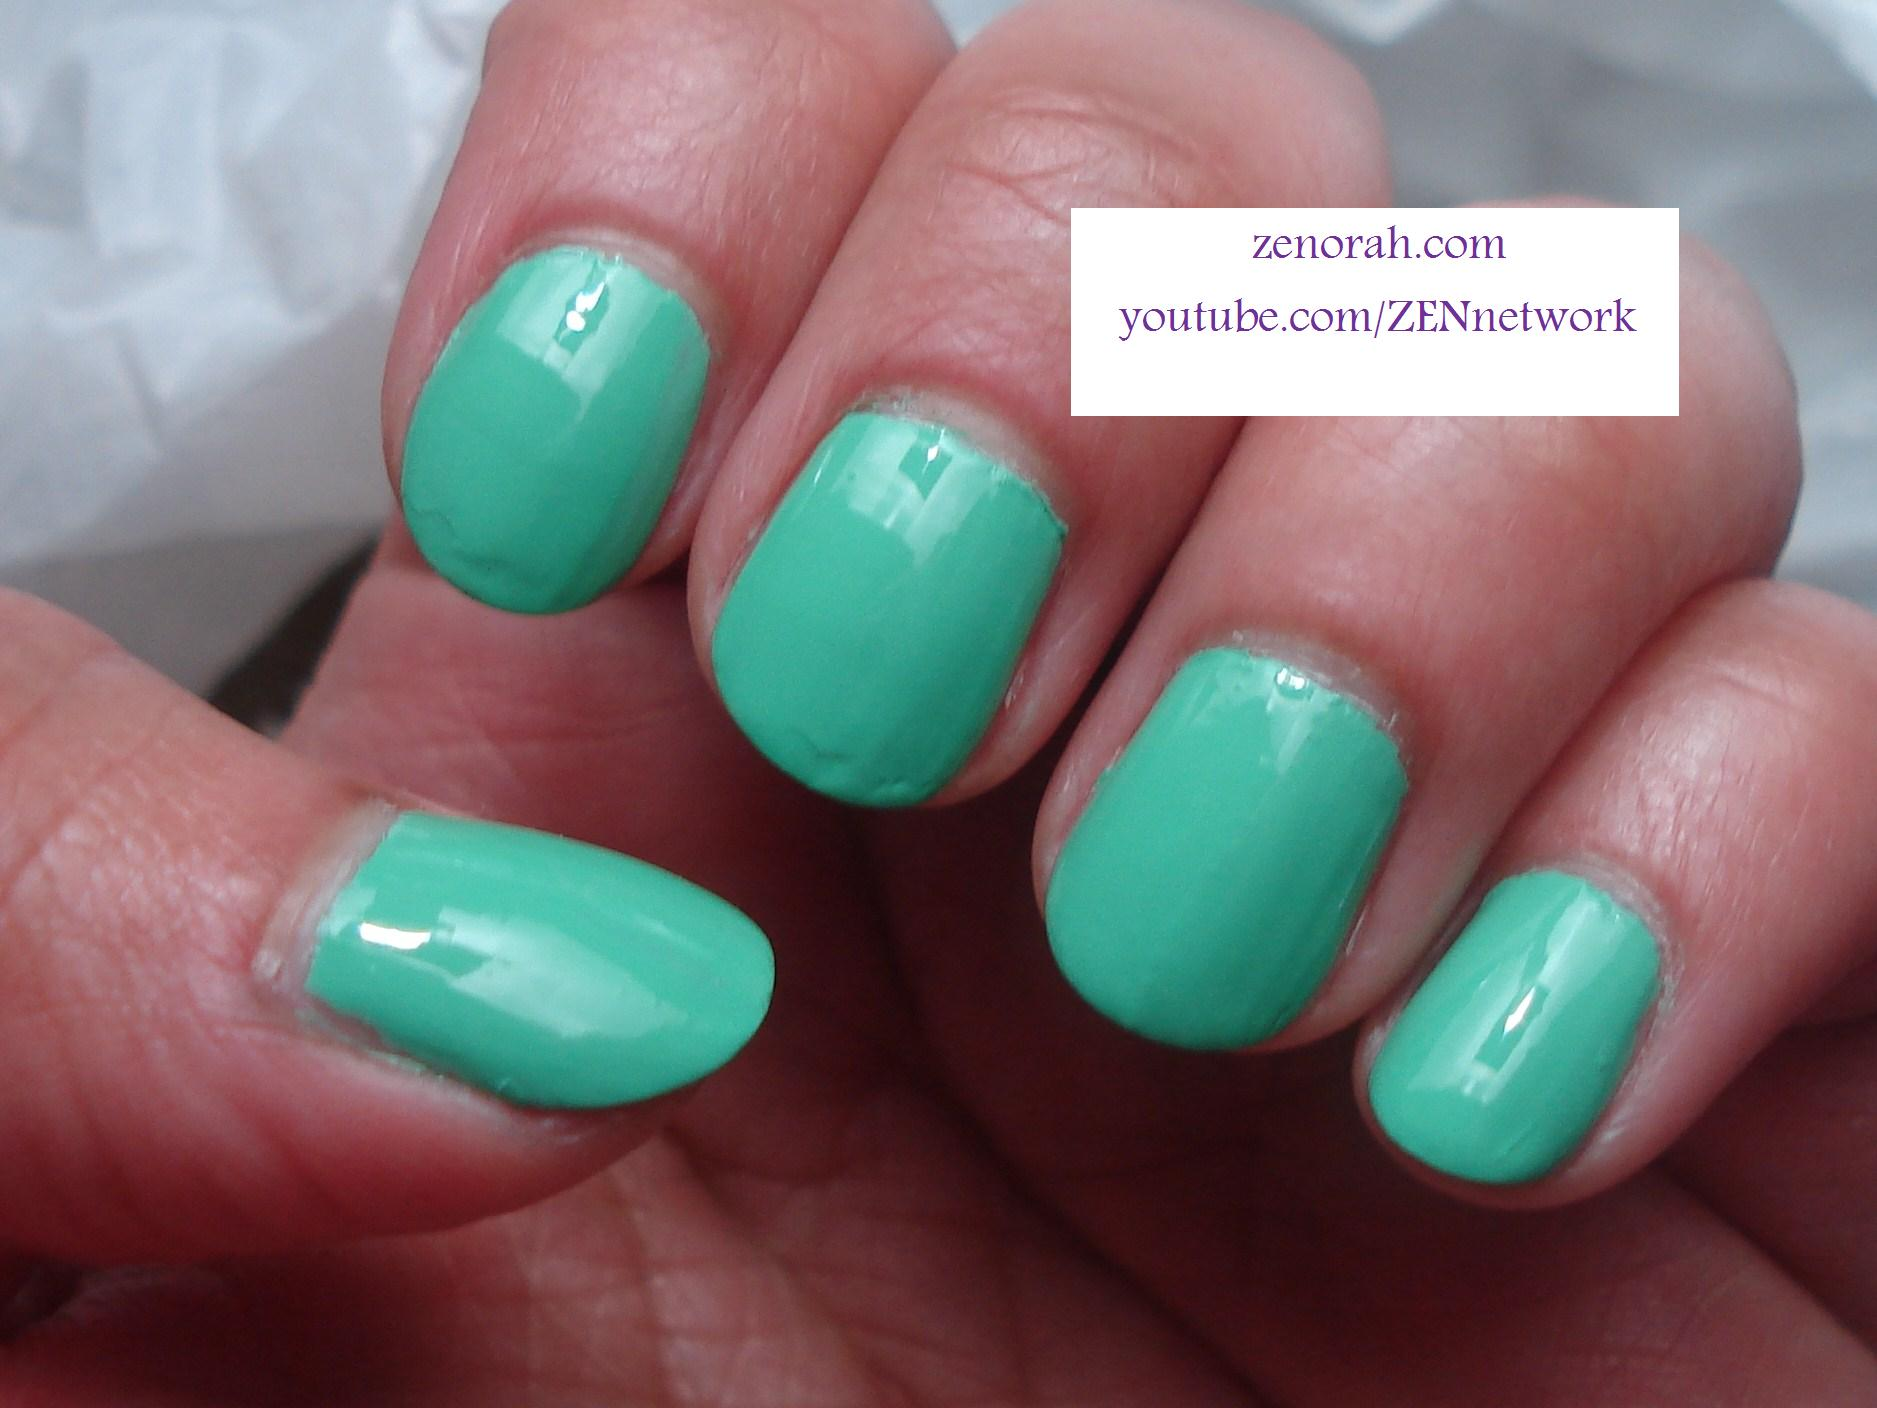 Essie Lime Green Nail Polish | Hession Hairdressing